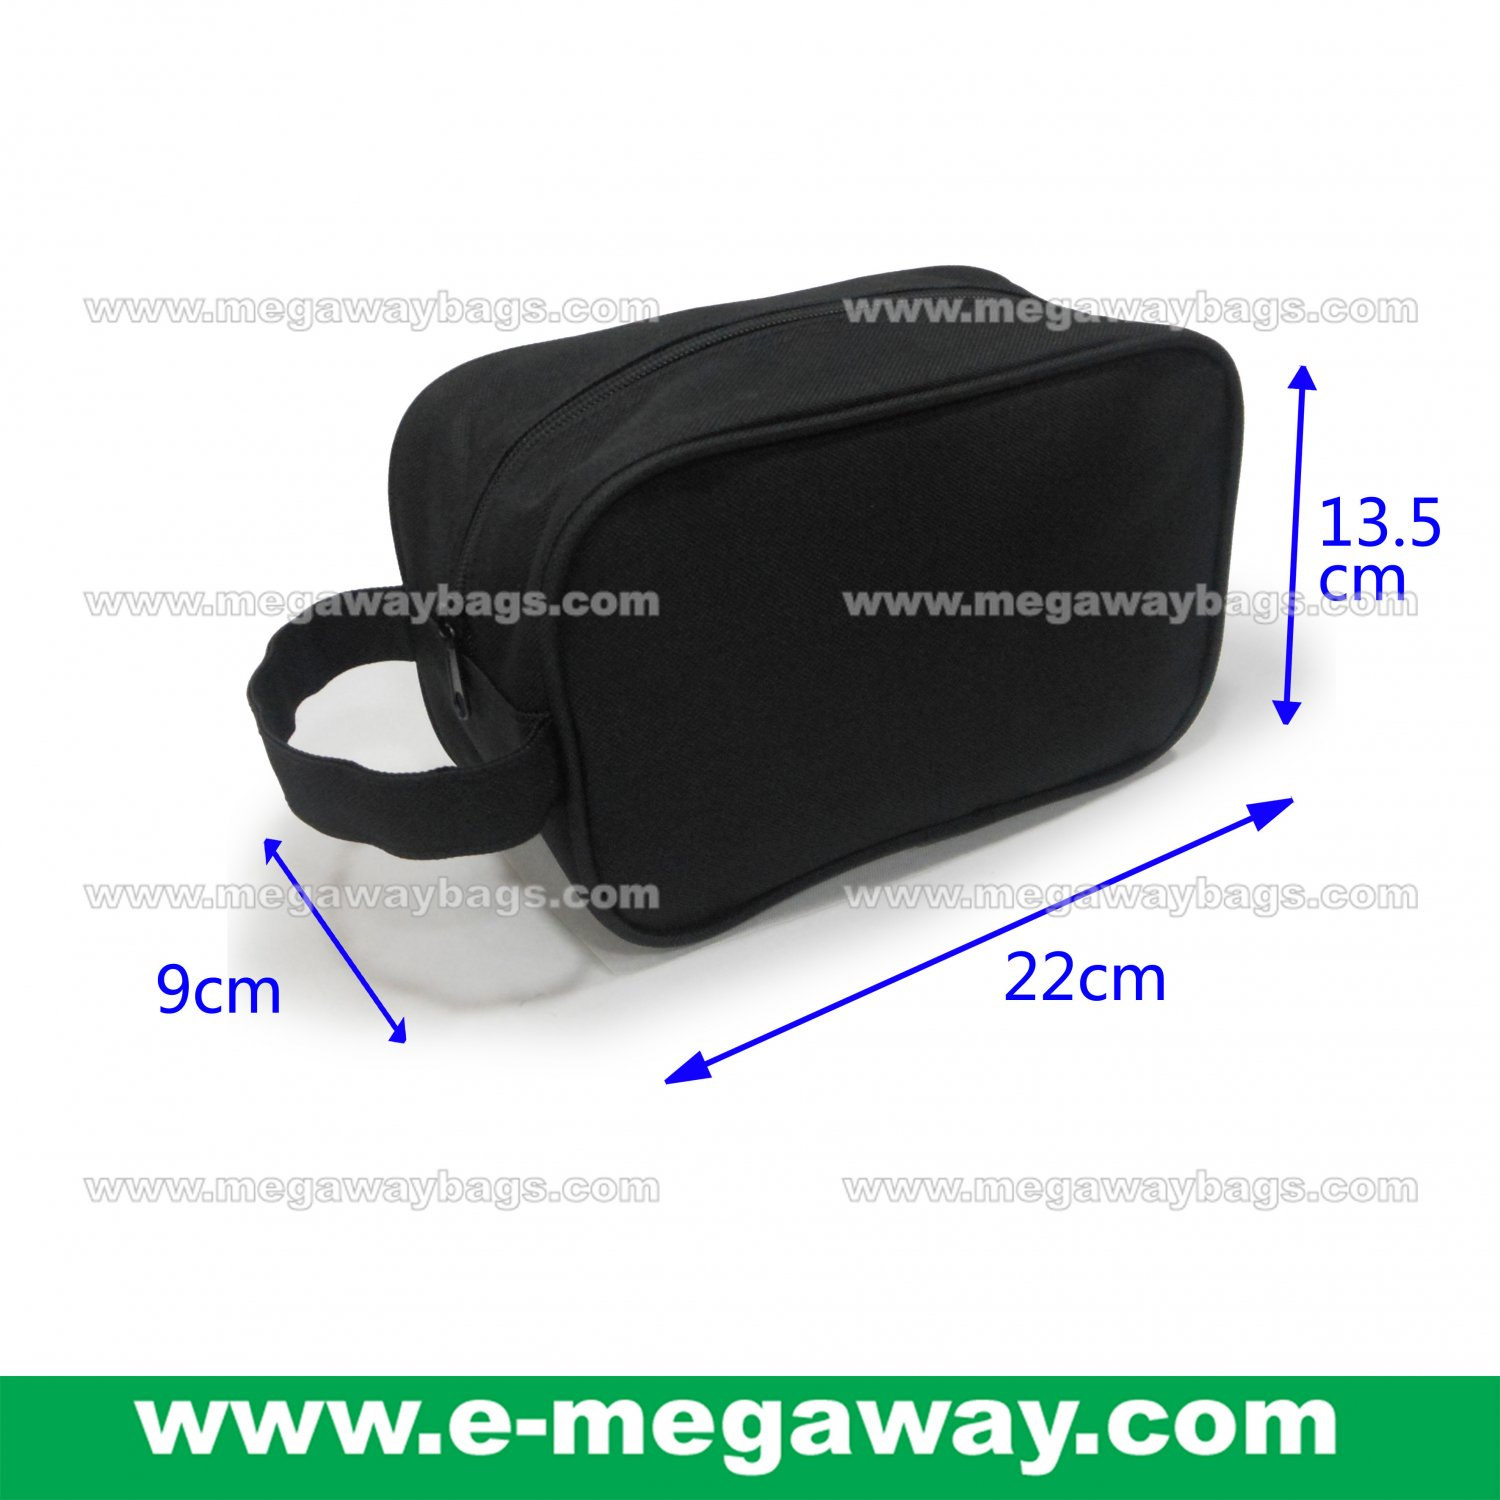 Unisex Travel Amenity Beauty Makeup Bag Purses Cosmetic Spa Pouch MegawayBags #CC-0973A